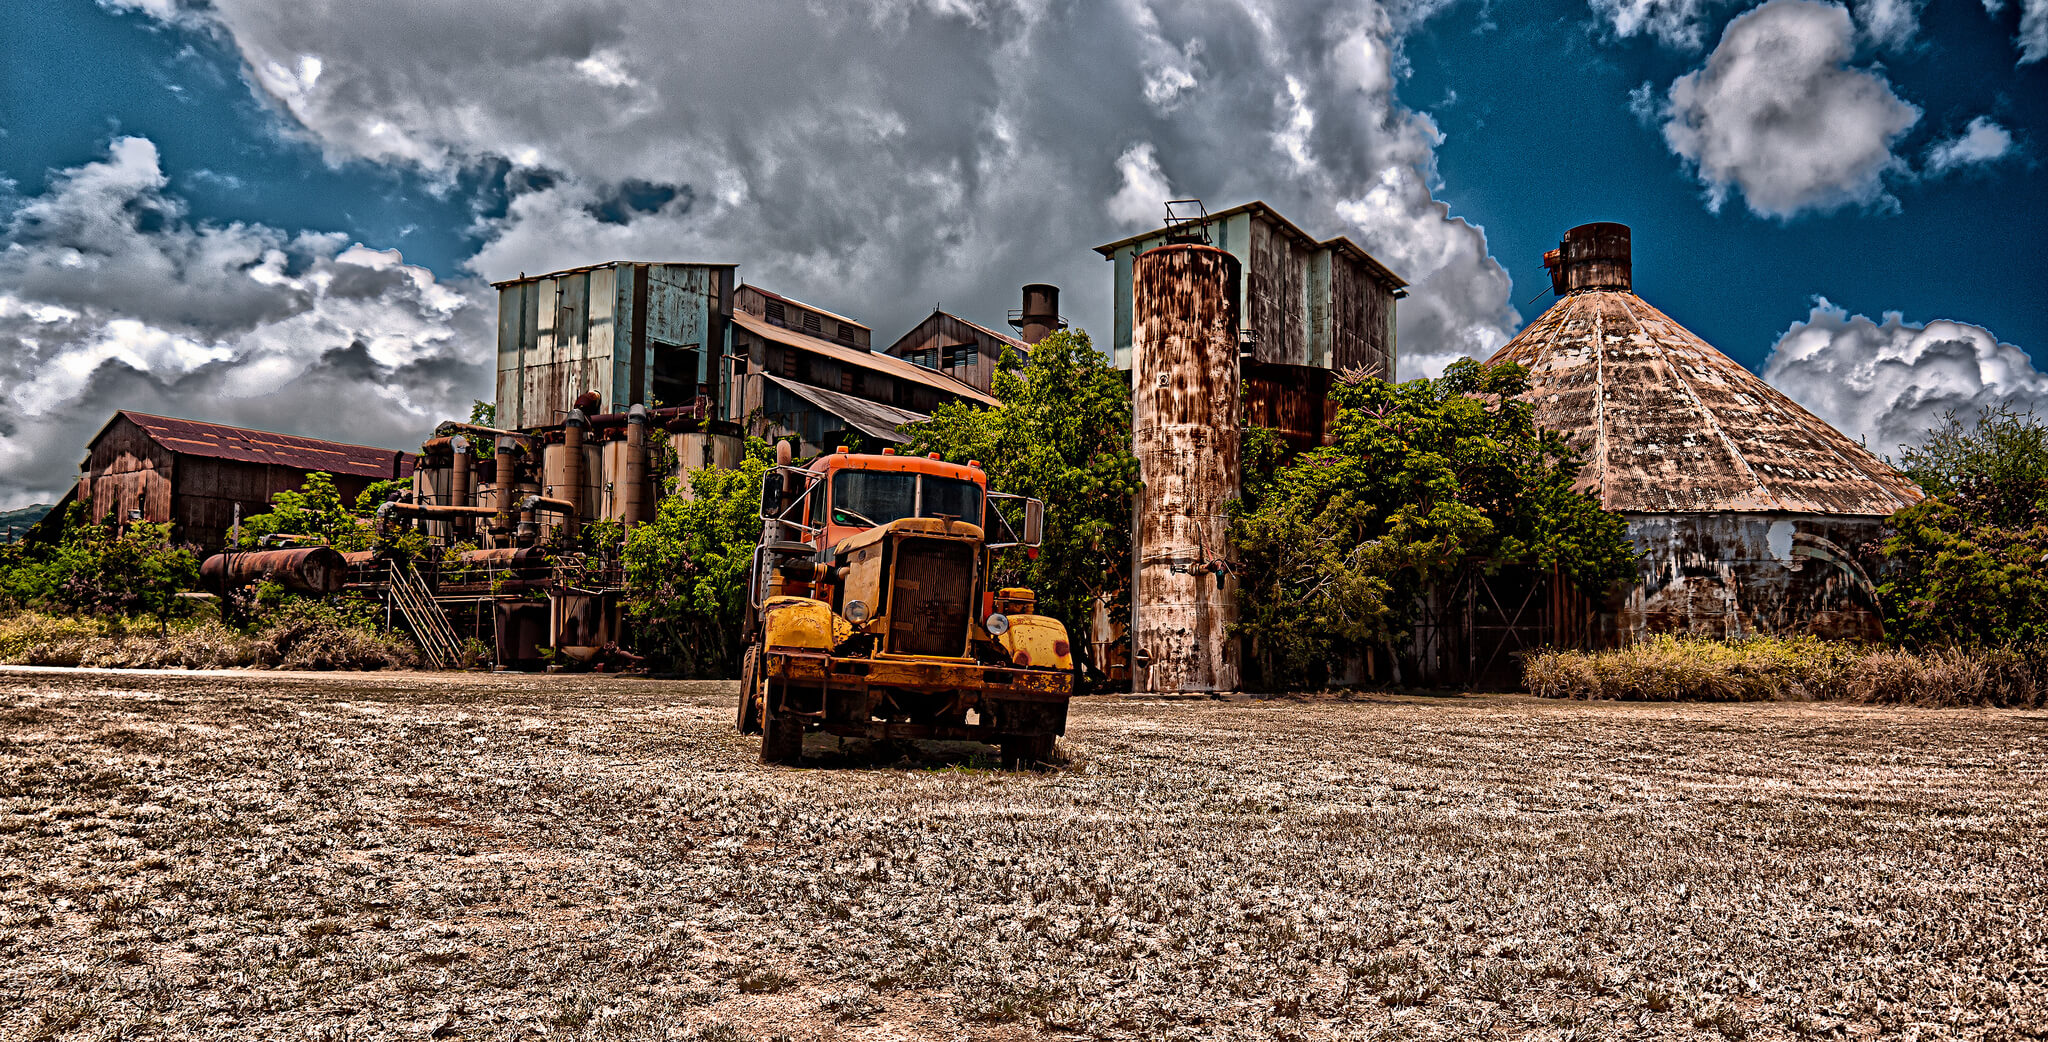 5 Things You Didn't Know About The Abandoned Old Koloa Sugar Mill